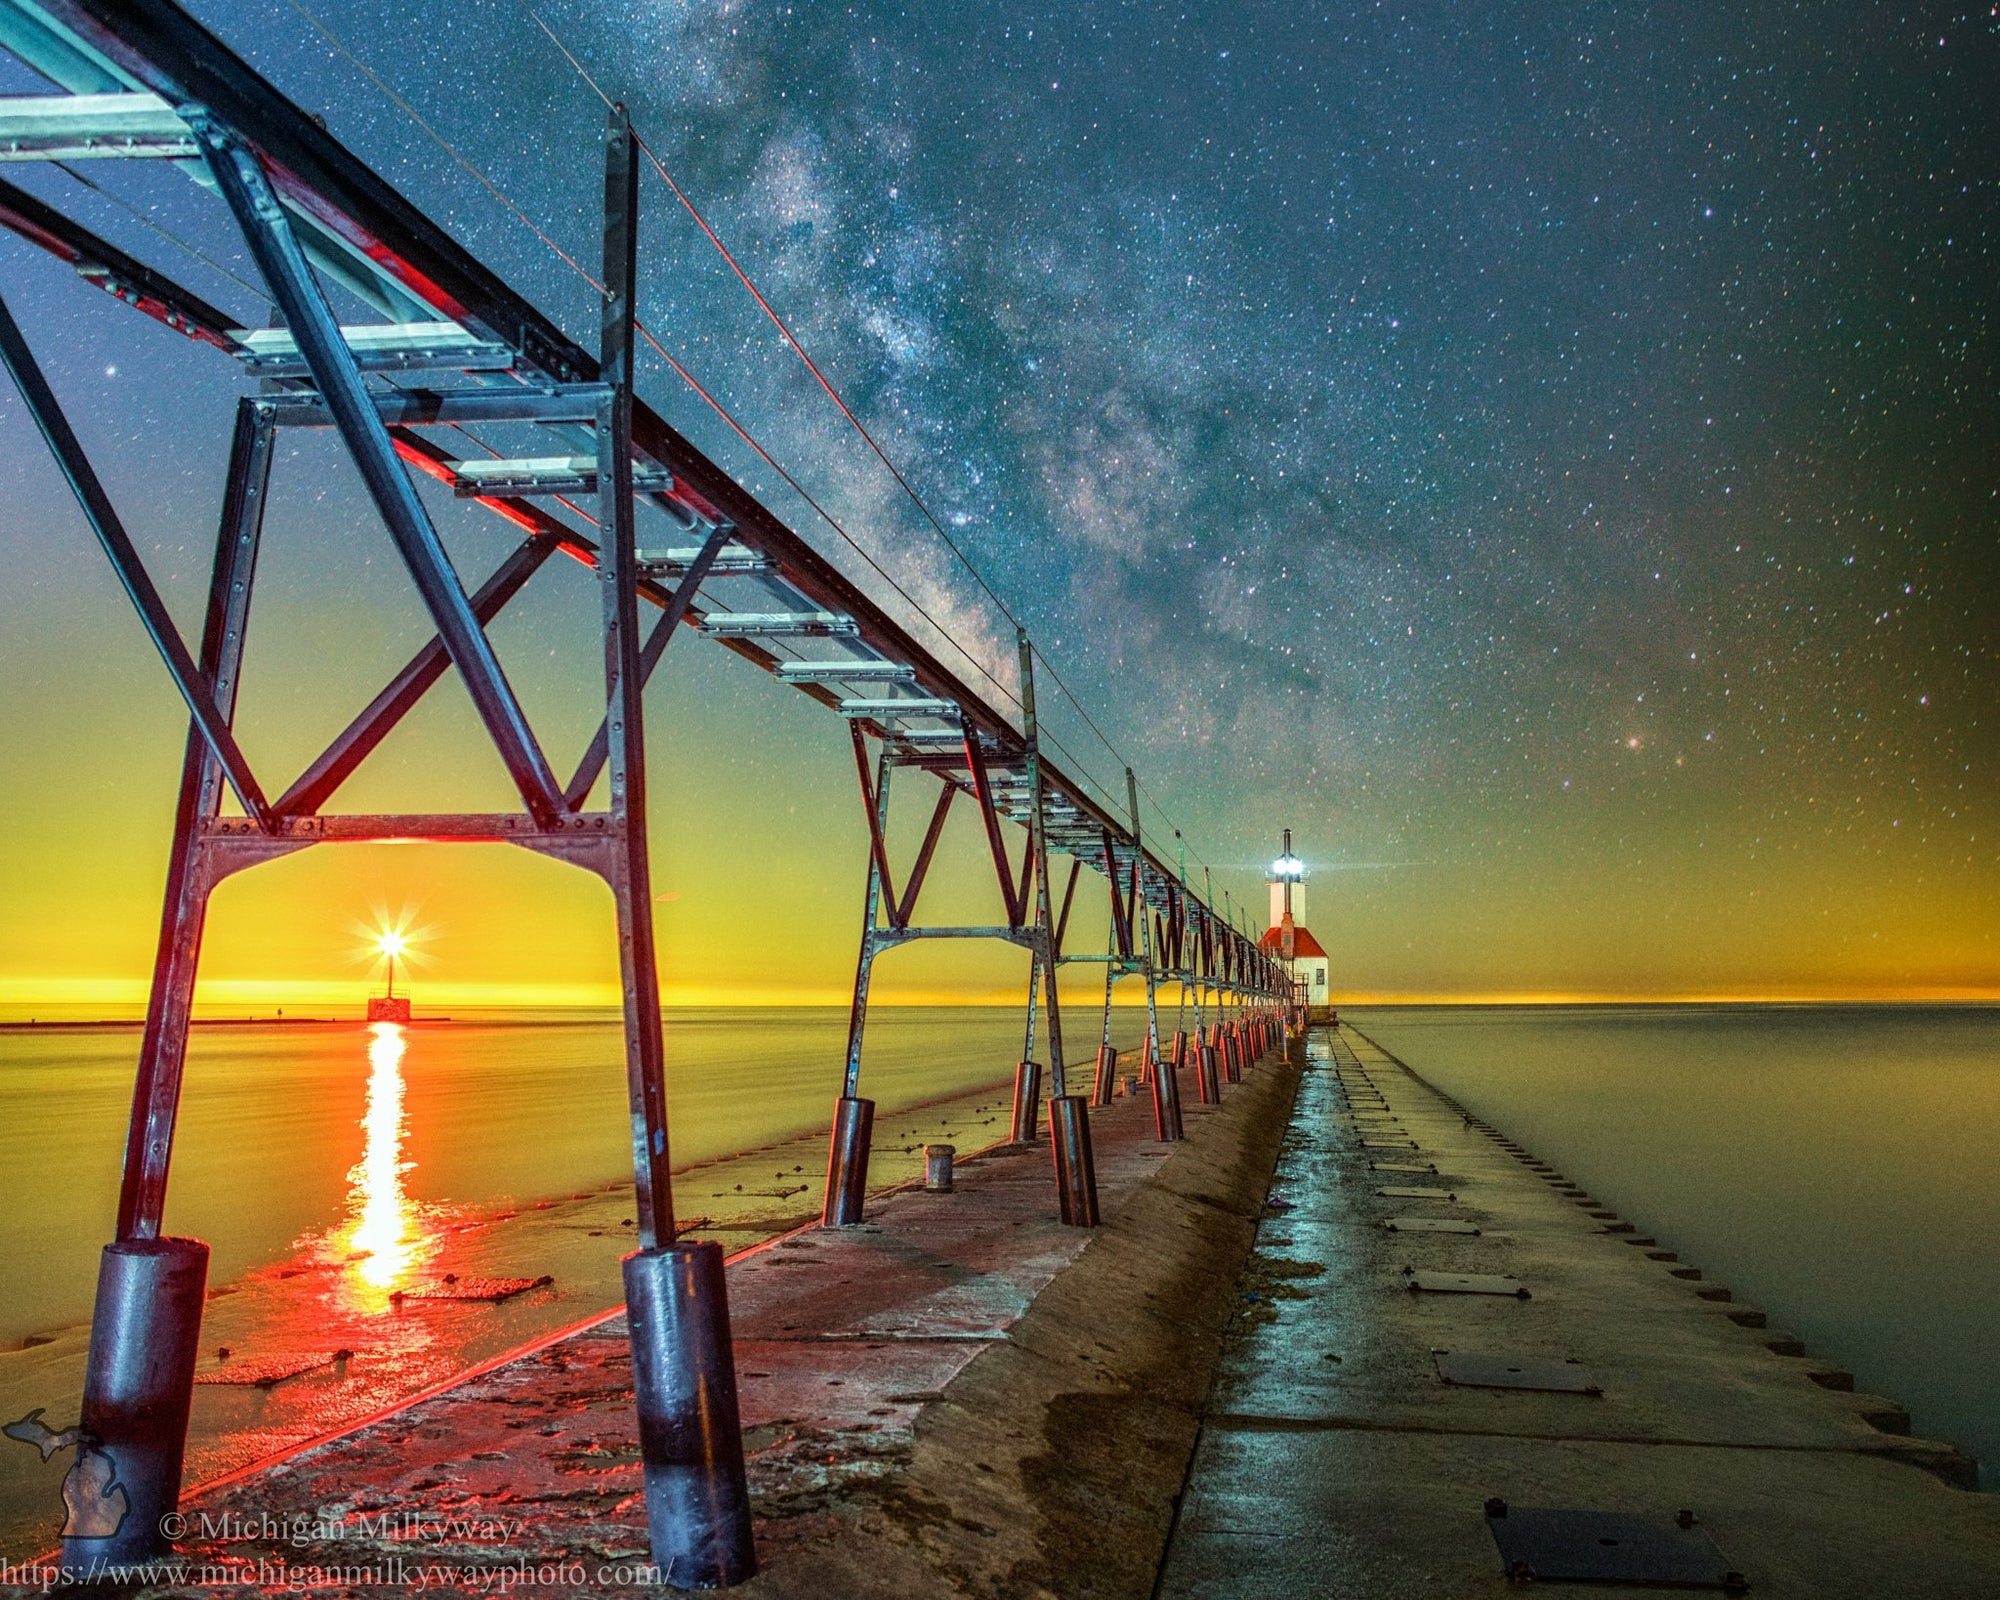 Lighthouses collection by Michigan Milkyway